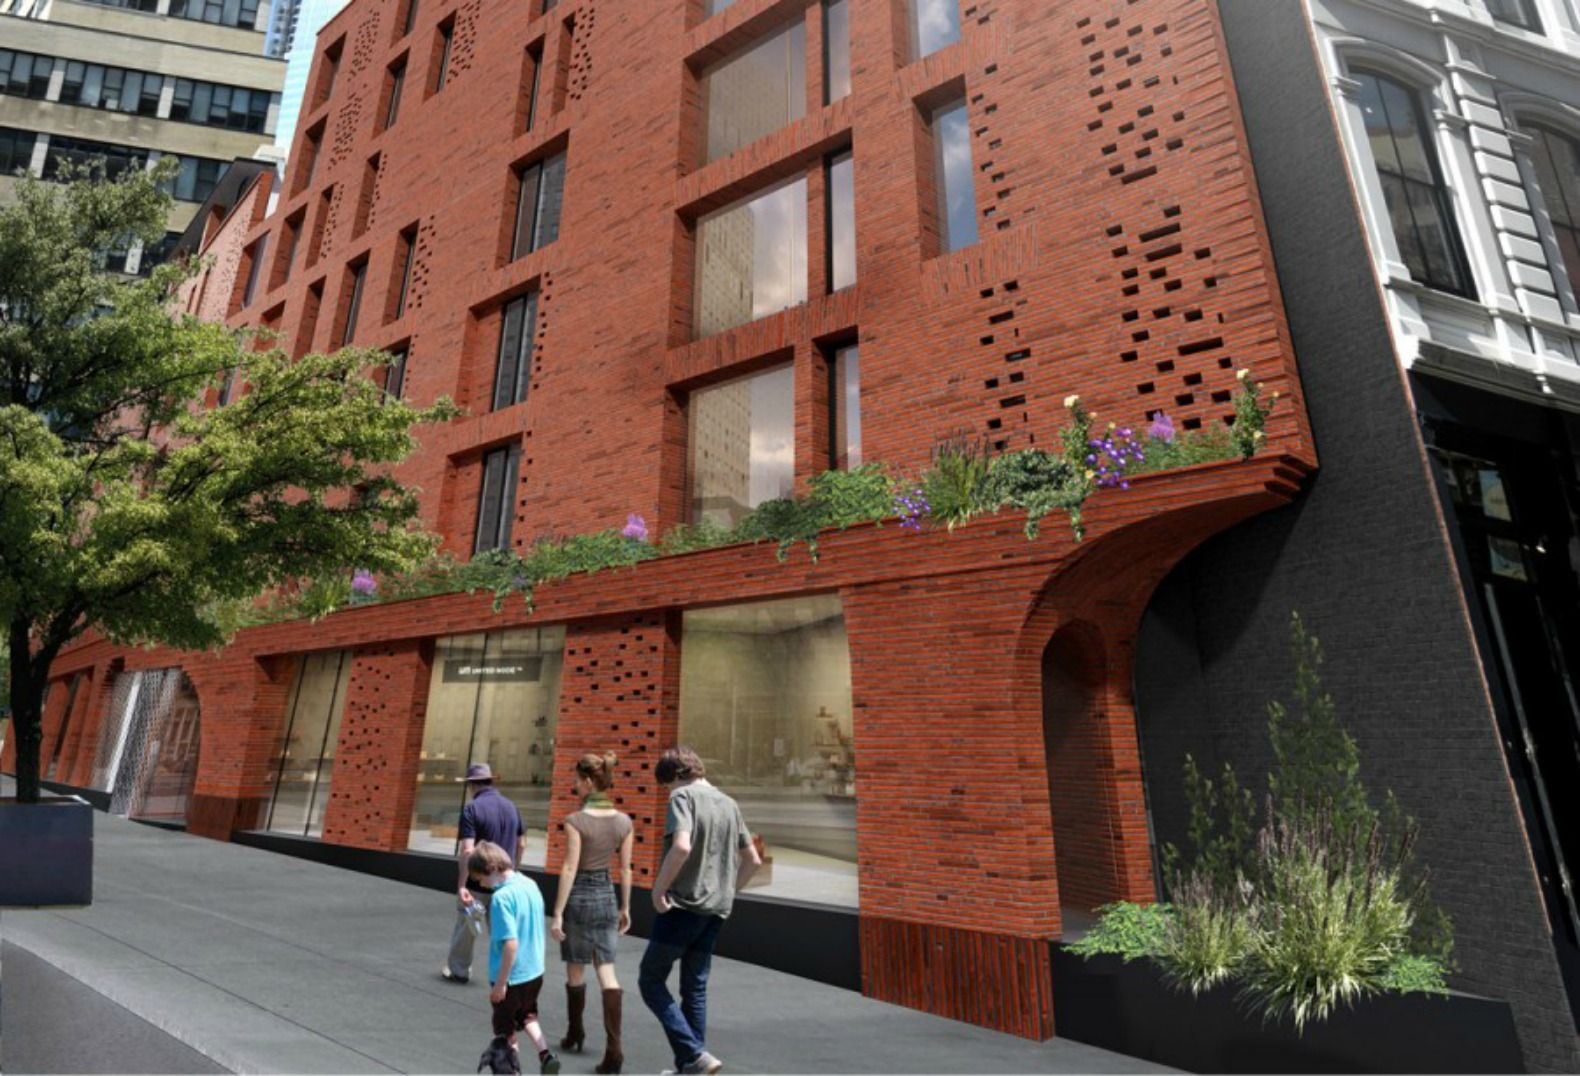 Ddg S New Tribeca Condos Wrap Modern Green Features Within A Traditional Brick Facade Brick Facade Nyc Real Estate Green Roof System